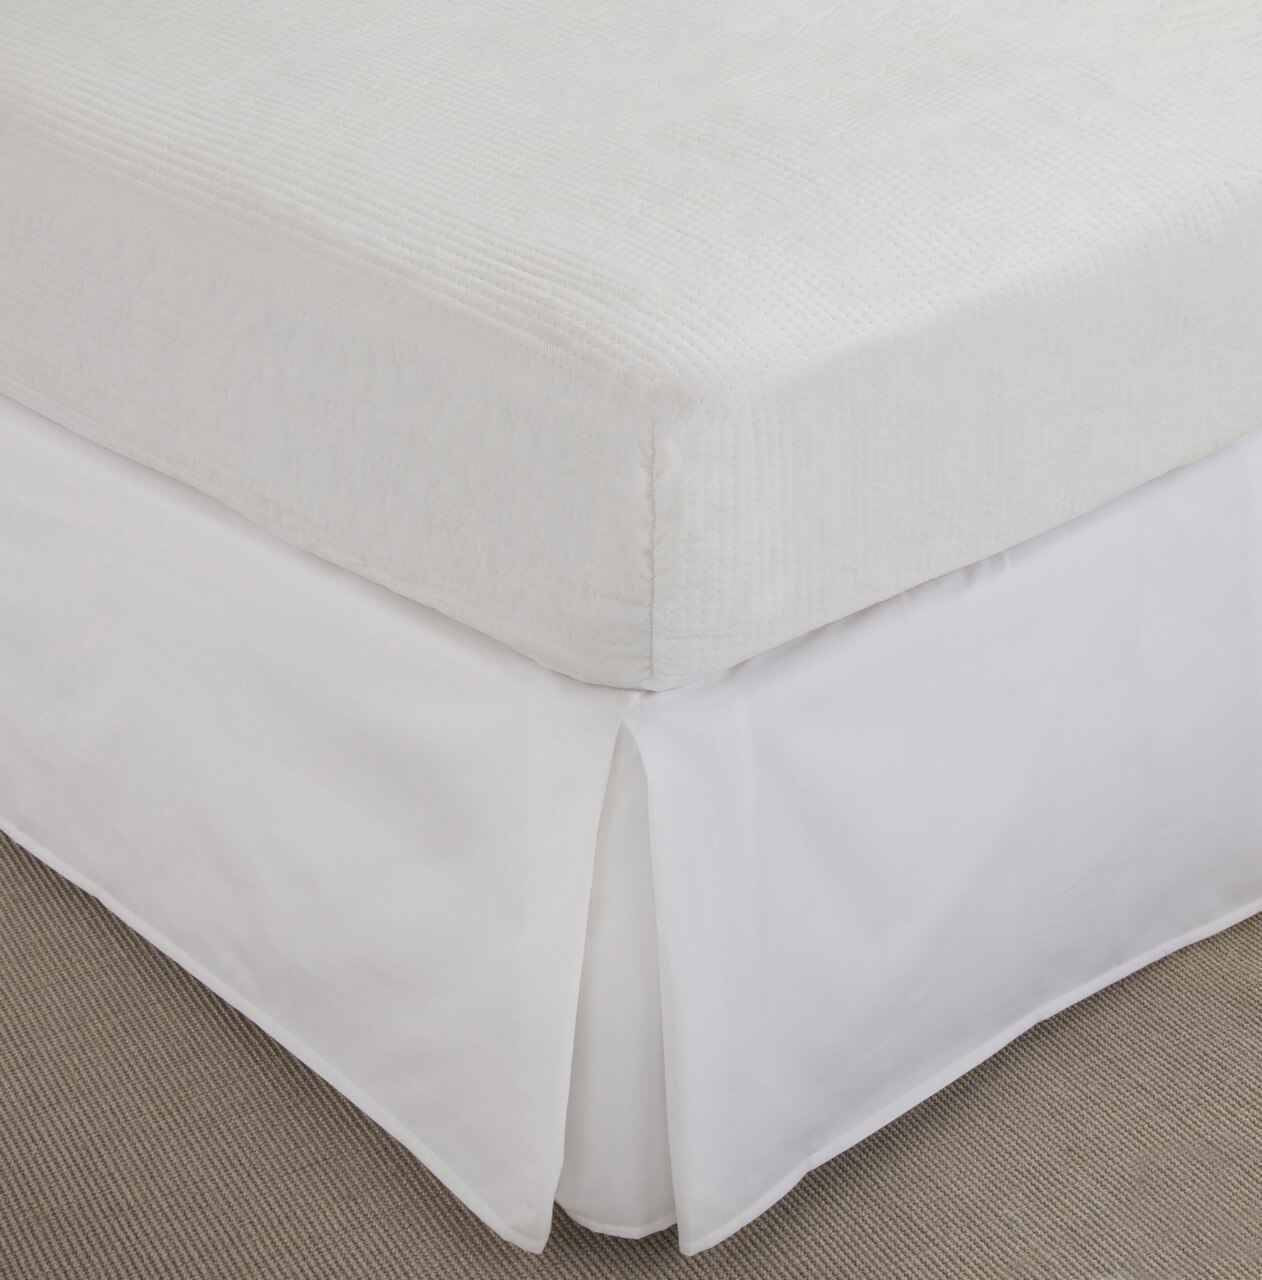 WestPoint/Martex Westpoint or Live Free or Standard Mattress Covers or fits 9 to 13 or Pack Of 3-6